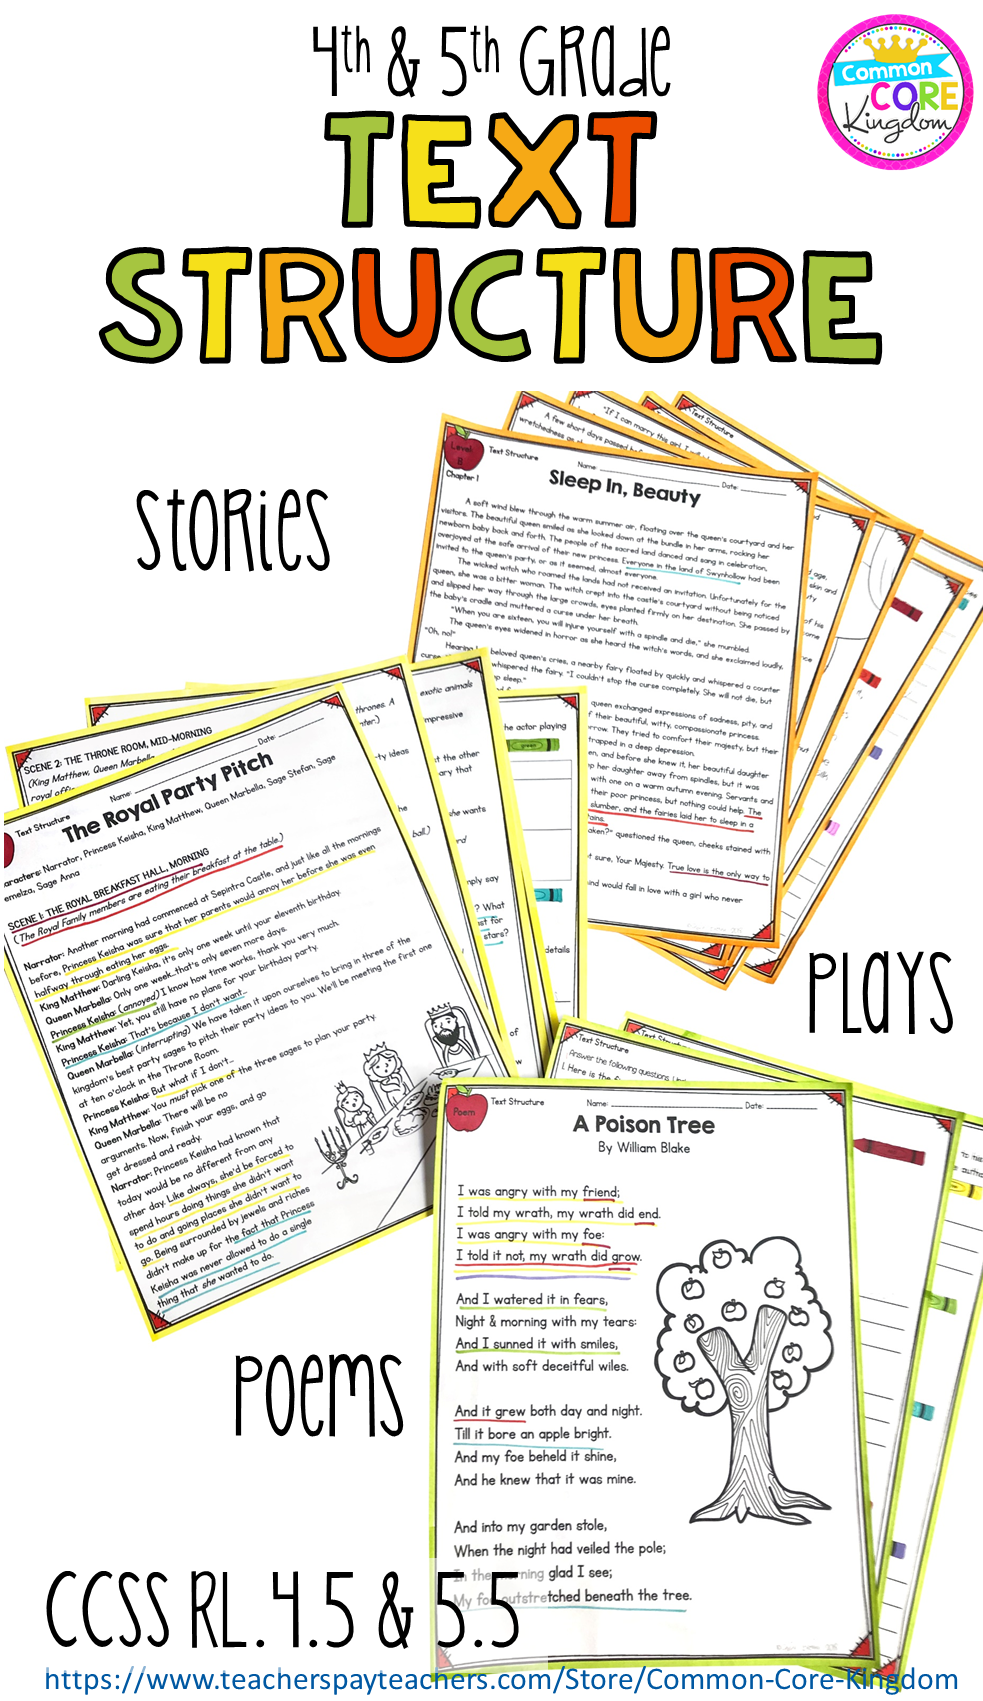 - Text Structure In Stories, Poems And Plays 4th Grade RL.4.5 & 5th